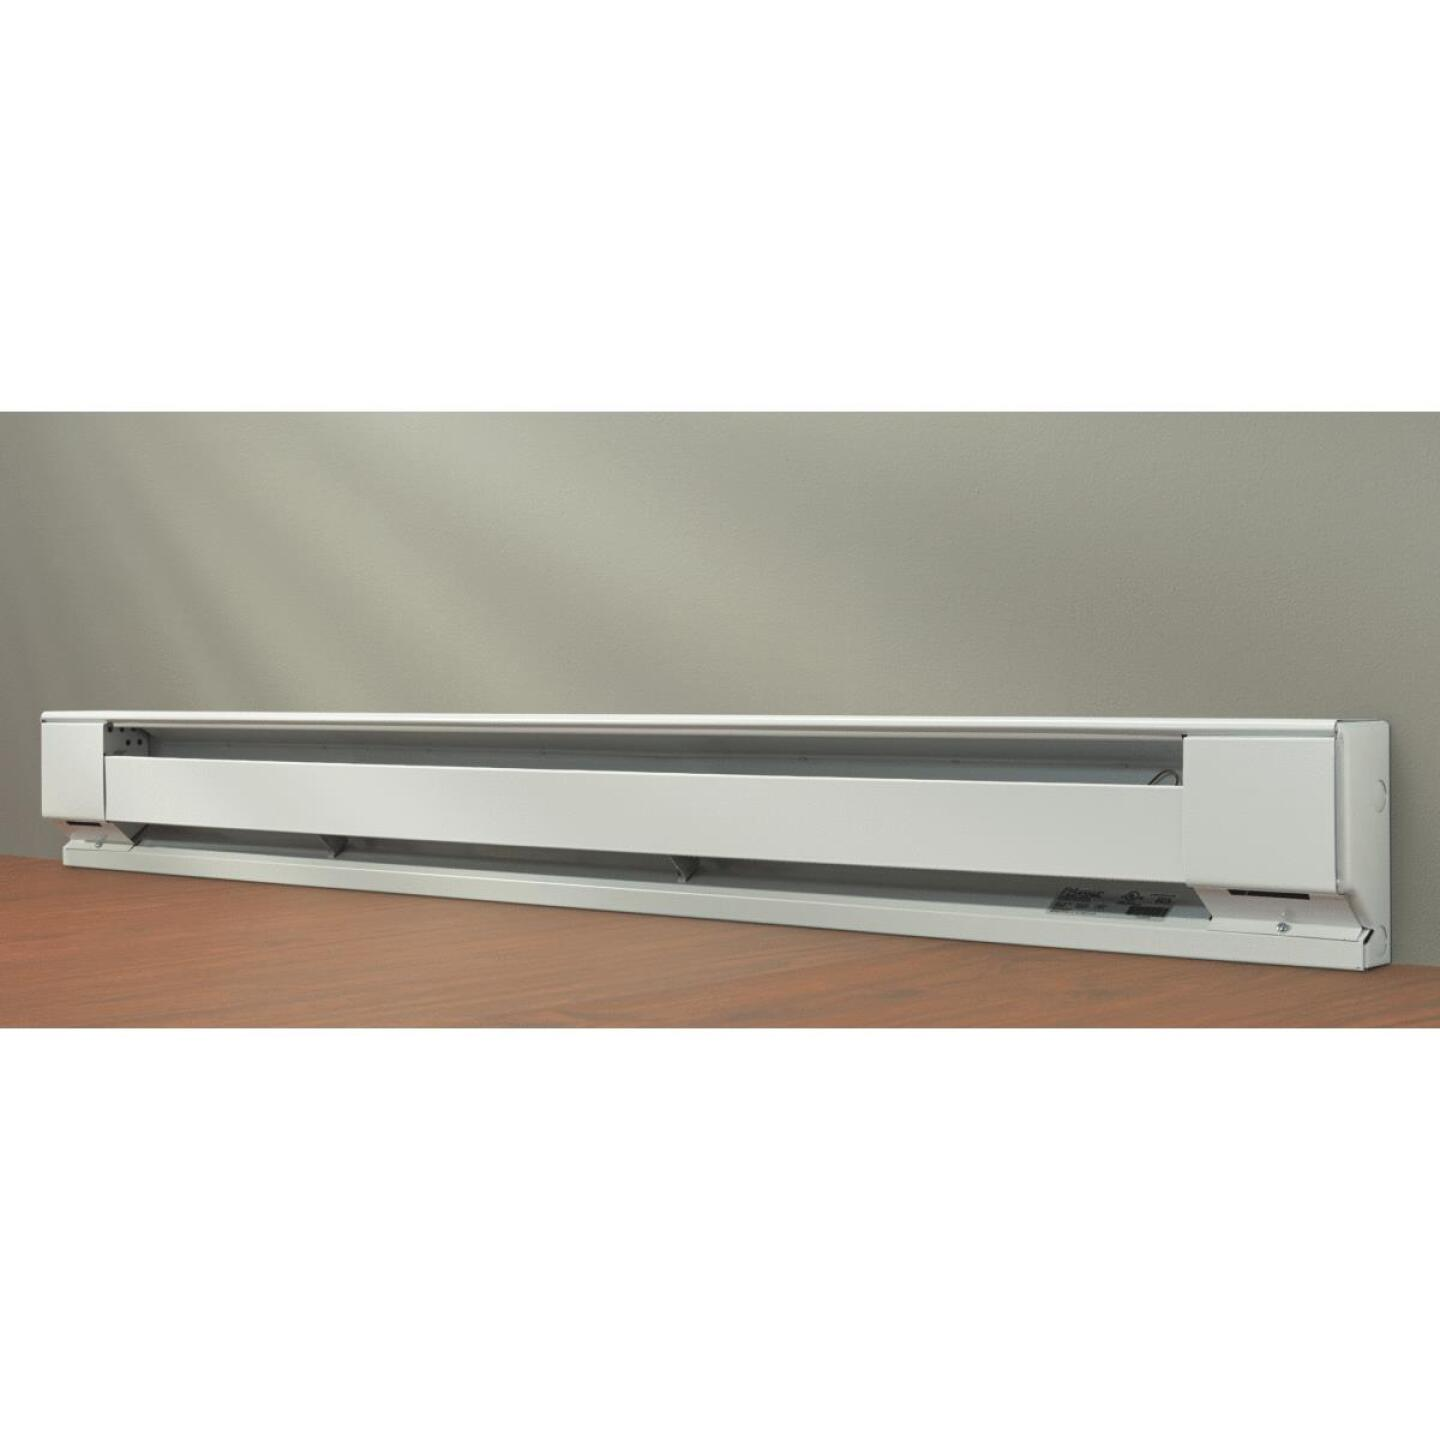 Fahrenheat 72 In. 1500-Watt 120-Volt Electric Baseboard Heater, Northern White Image 2